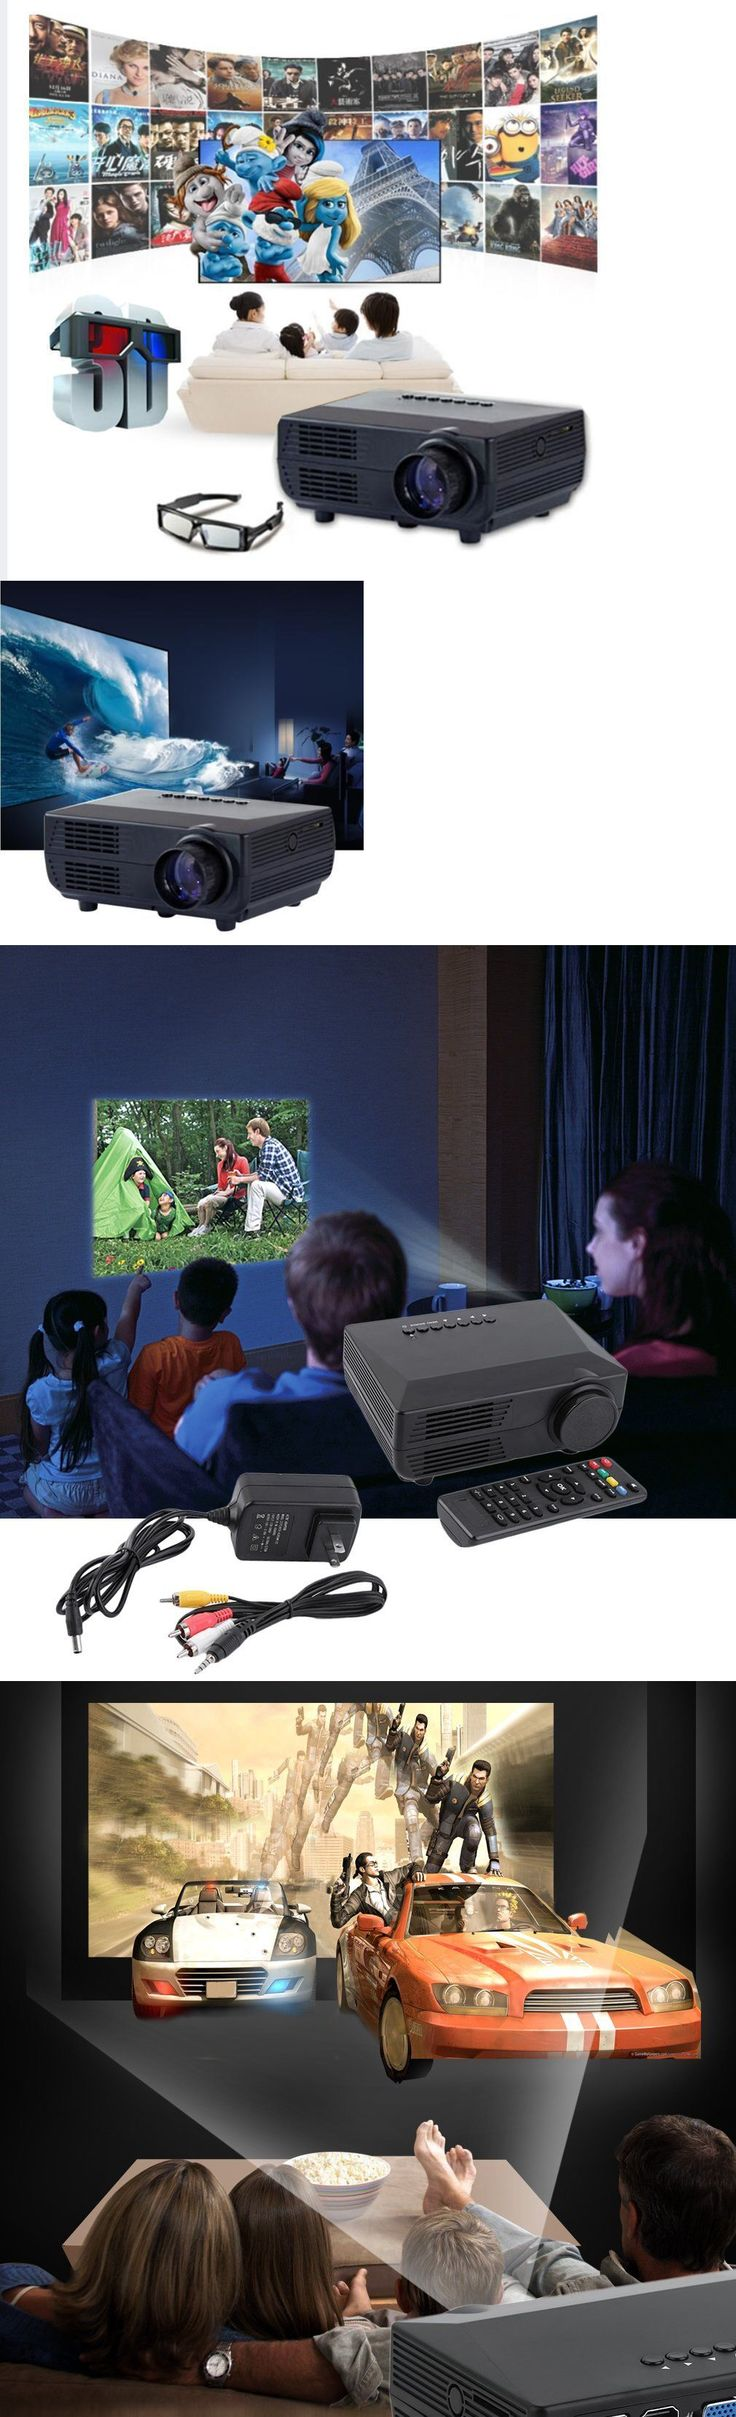 Home Theater Projectors: 2000Lumens Led Lcd Projector Hd 1080P Home Theater Cinema Usb Vga Atv Hdmi Man -> BUY IT NOW ONLY: $49.68 on eBay!